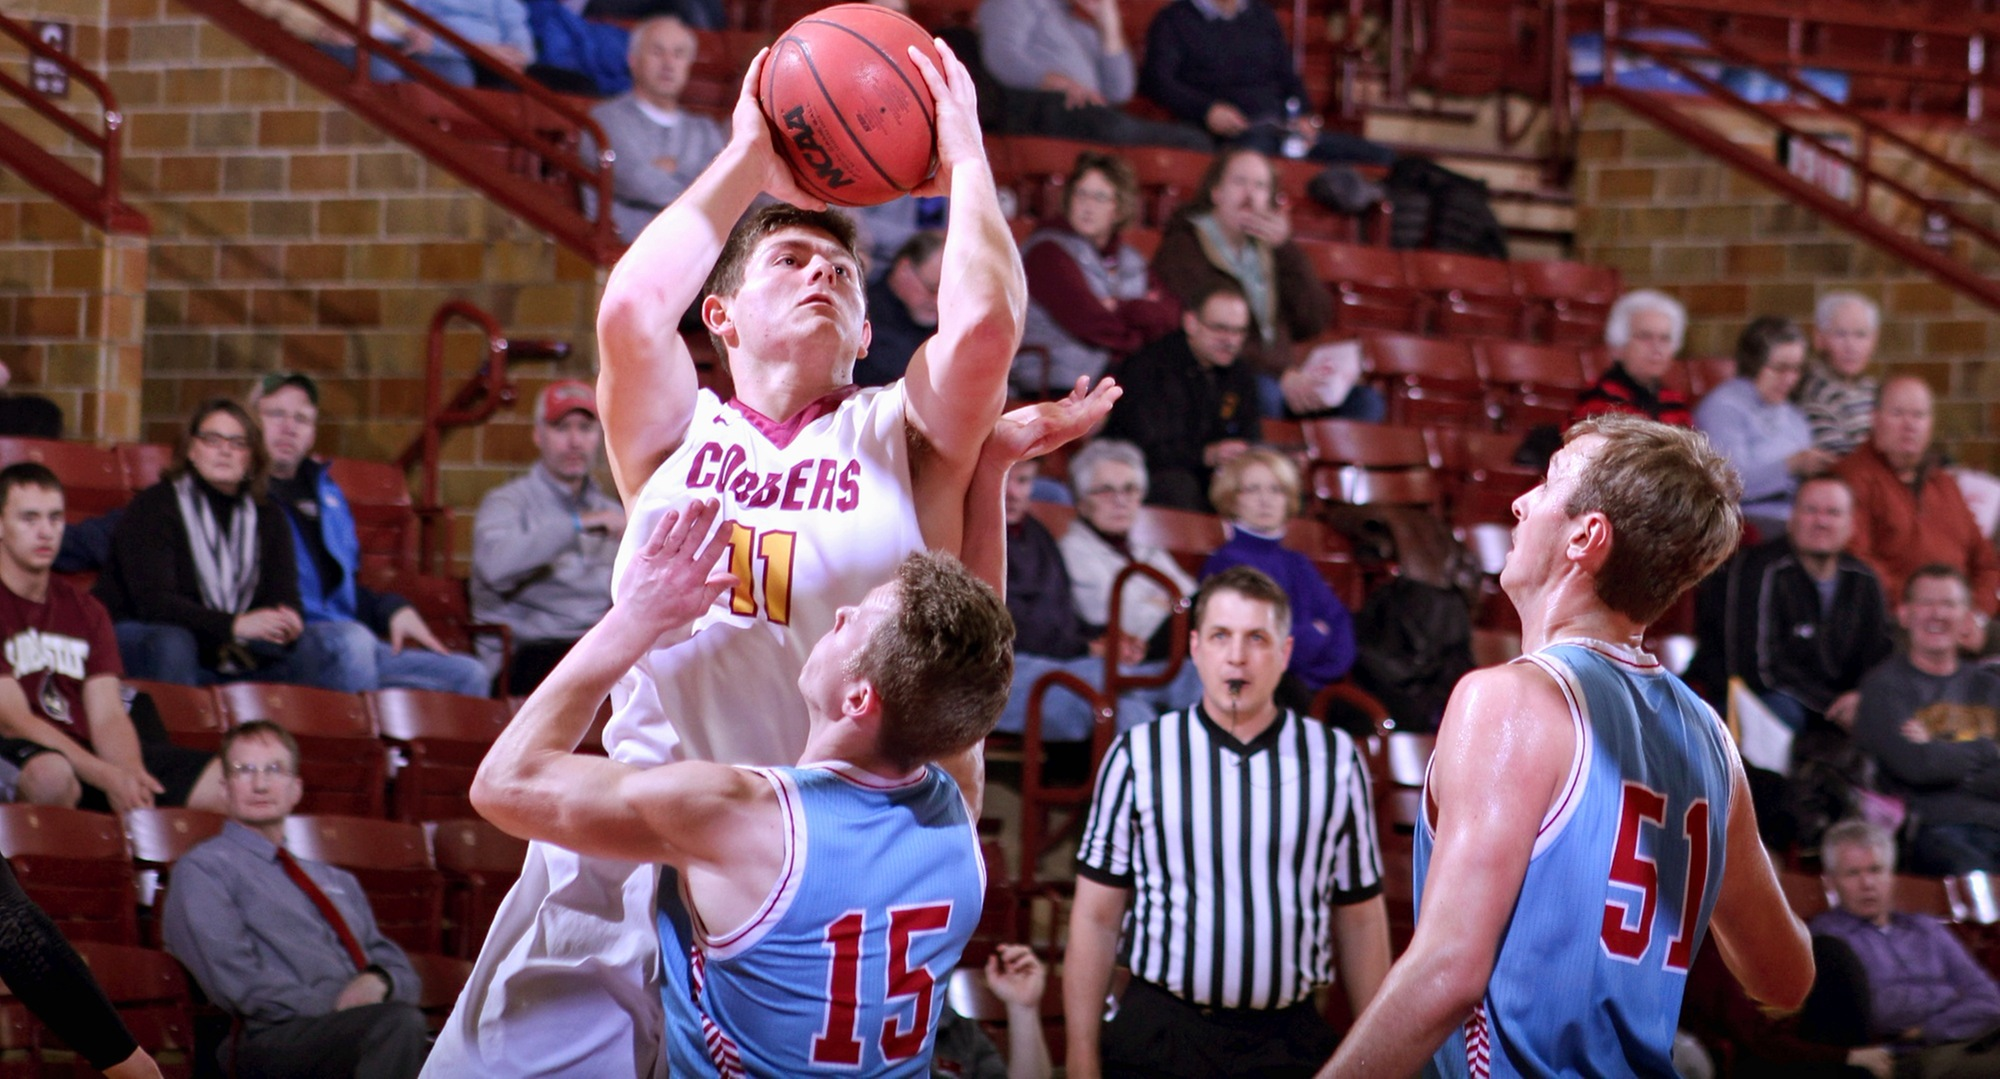 Senior Dylan Alderman drives to the basket during the first half of the Cobbers' game with St. John's.